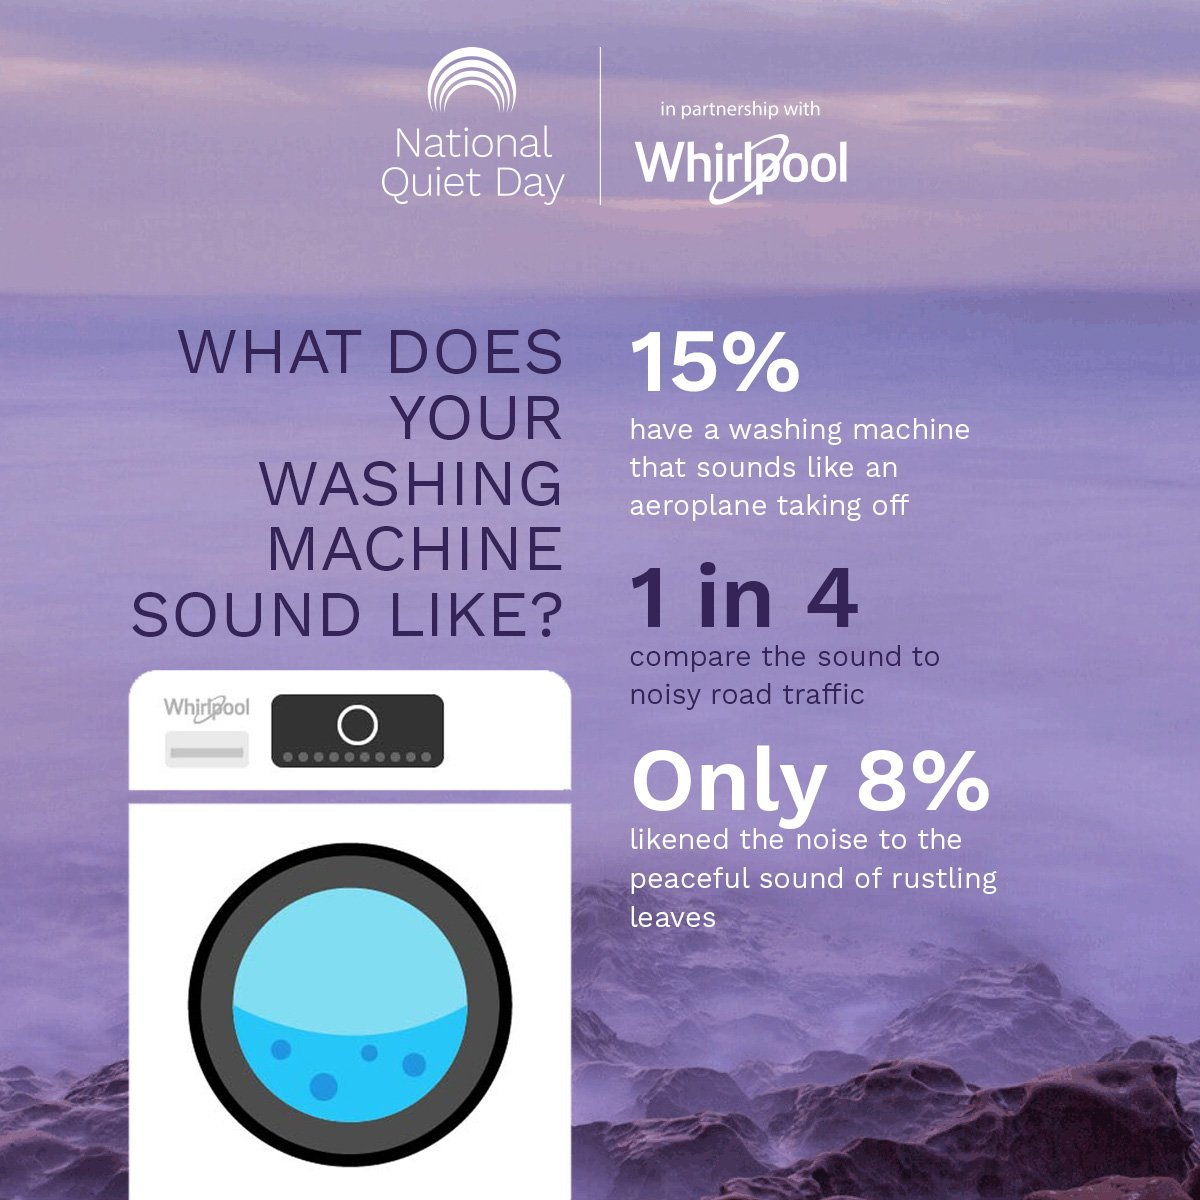 test Twitter Media - A #NationalQuietDay mini-poll found that 15% of those surveyed are putting up with a washing machine that sounds like an aeroplane taking off in their kitchen. What does your washing machine sound like? #WednesdayThoughts #WednesdayWisdom https://t.co/tbtrW6ojl5